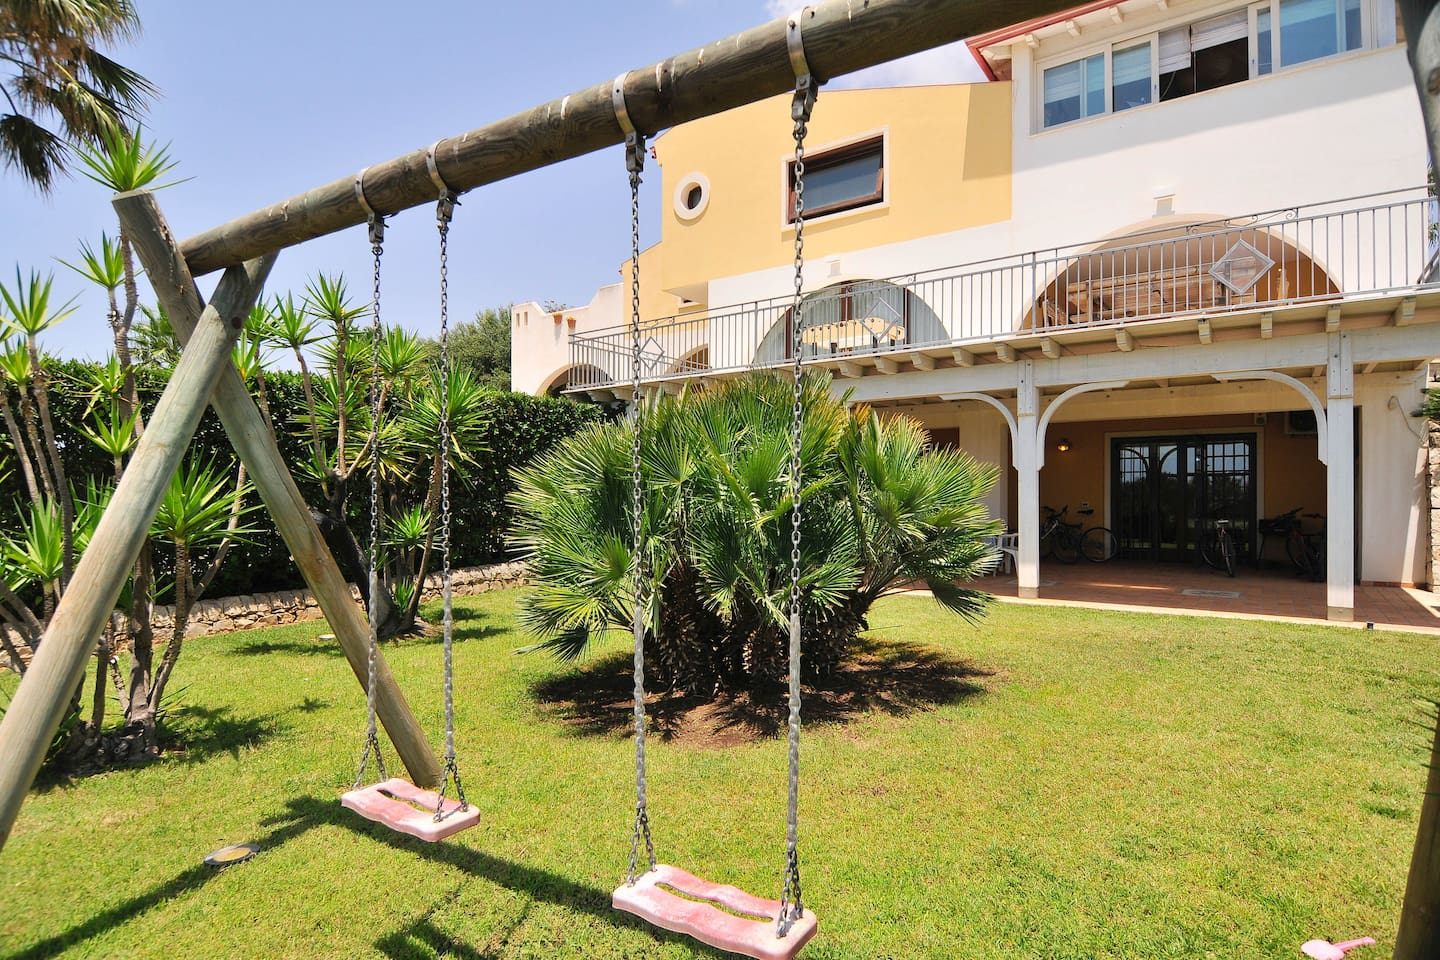 This apartment has a walkout yard and private beautiful porch...